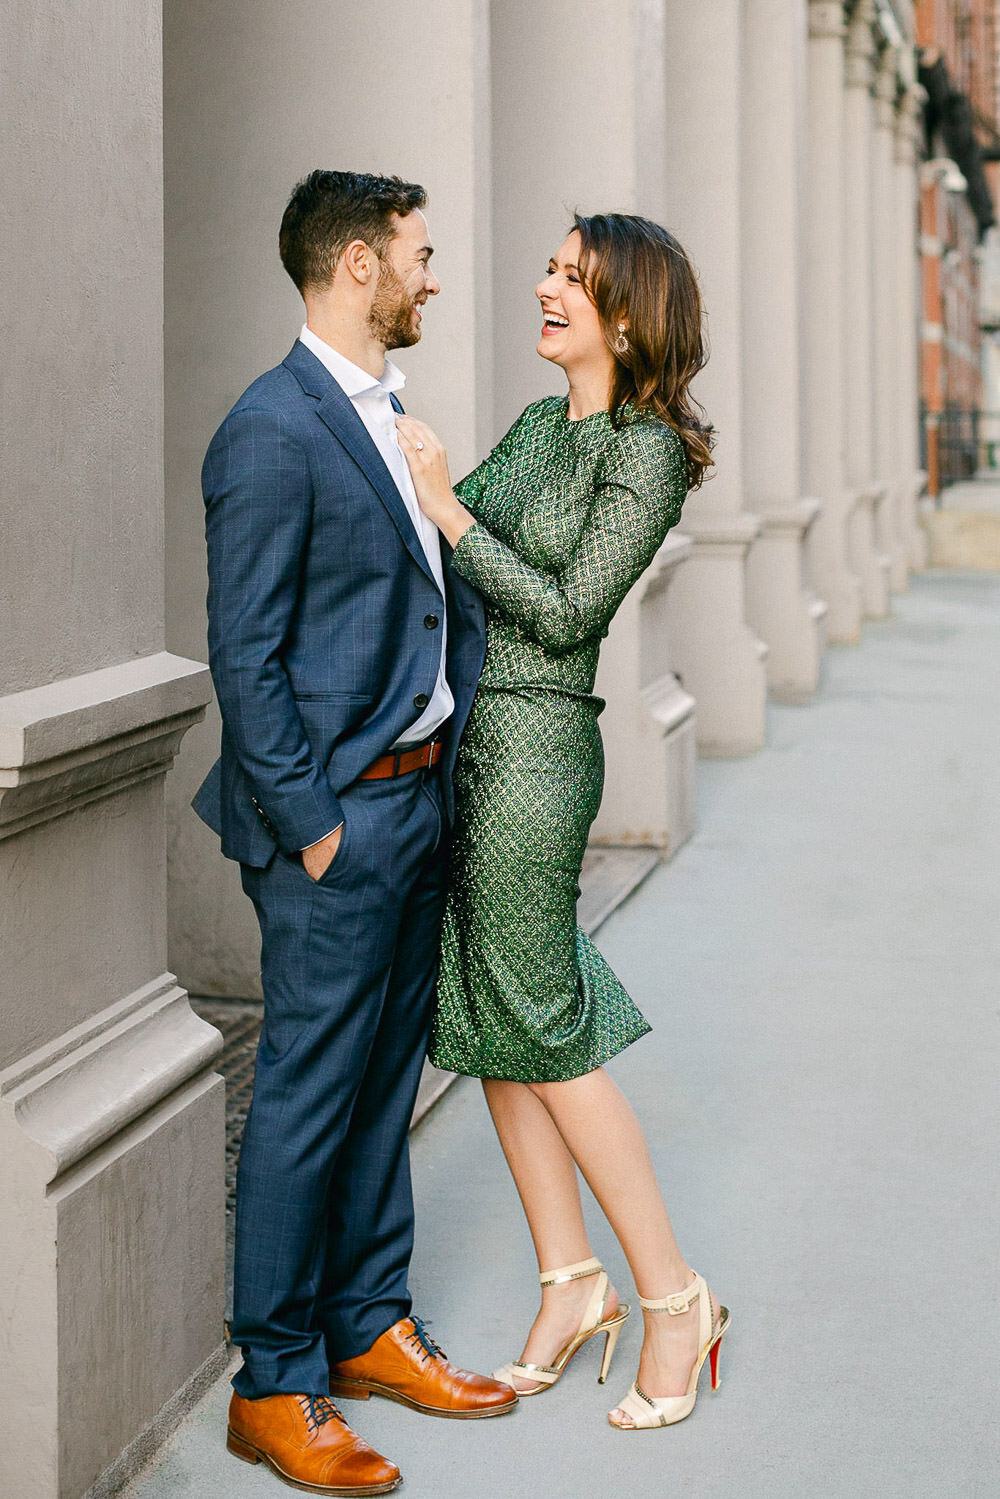 Man in blue suit and woman in green dress standing together in Tribeca NYC street